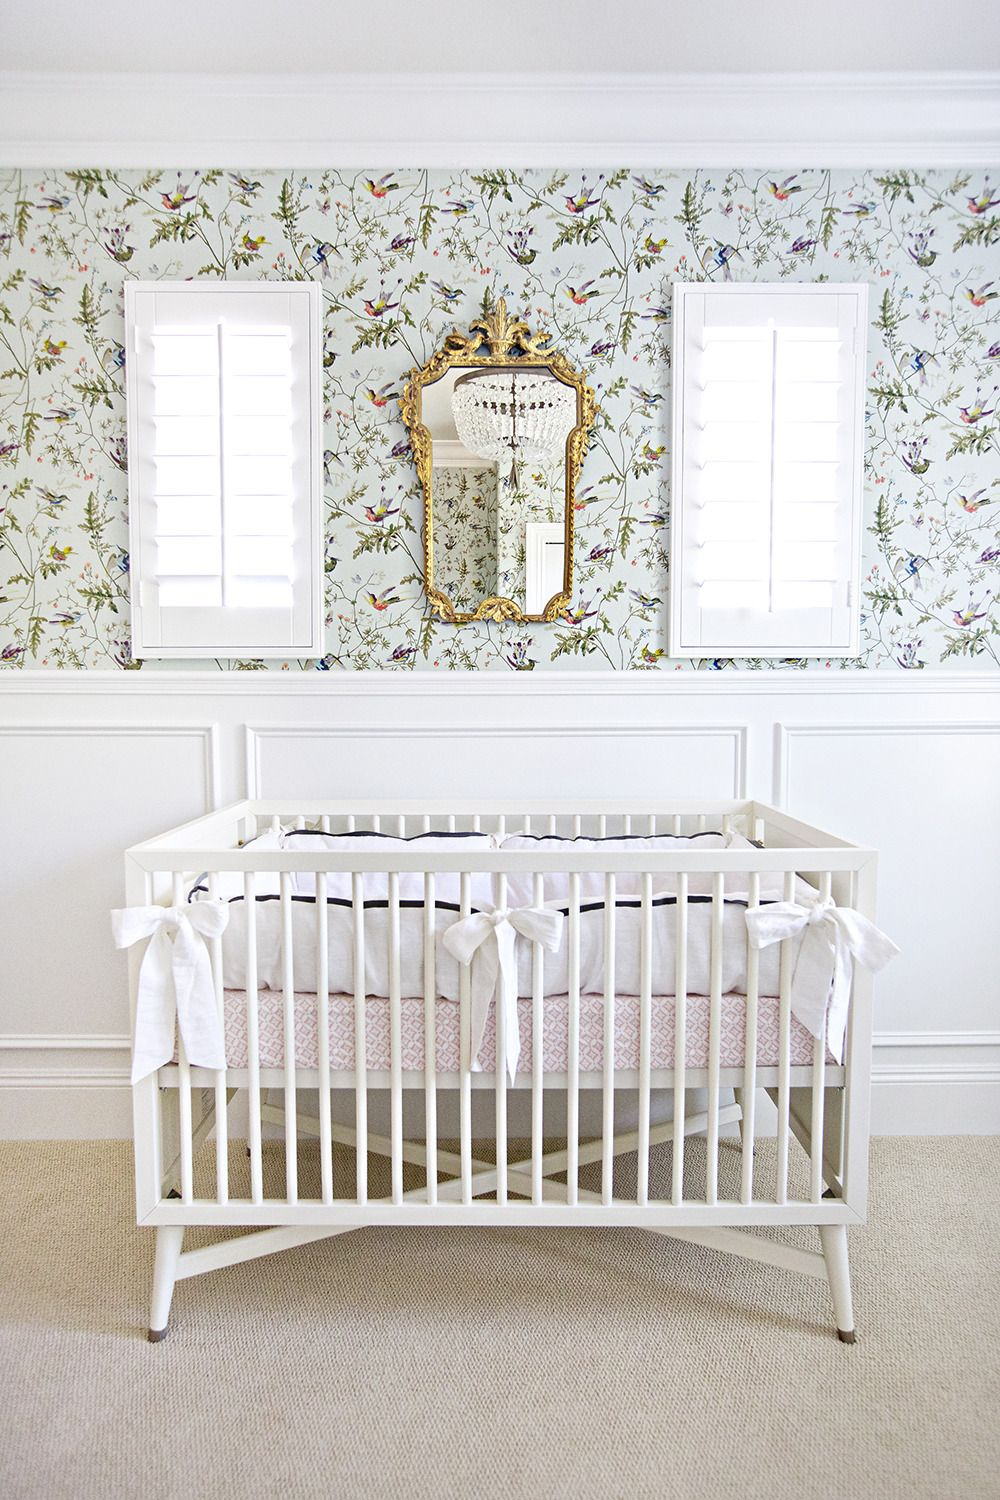 Bird Nursery Crib Wallpaper Pastels Mirror Walls Home Tour